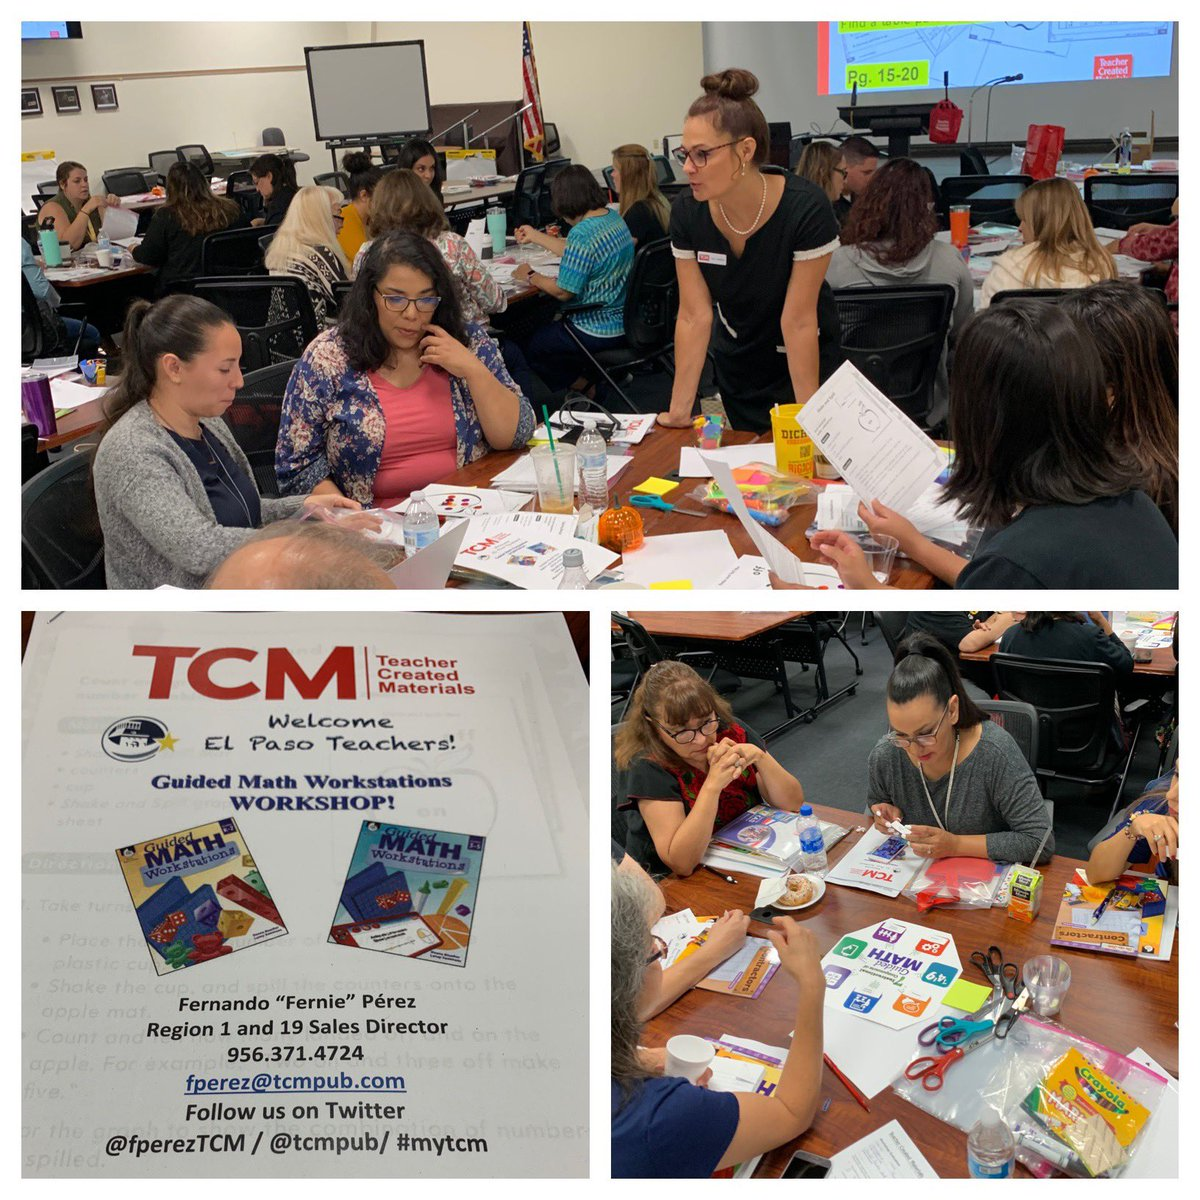 Great start to the week with @ELPASO_ISD @EPISDDoDEA2017 schools working with #Elemteachers further enhancing their knowledge of #guidedmath #workstations with @lisacallahan9 #mytcm #iamEPISD<br>http://pic.twitter.com/Prub6p8hmq – à Professional Development Center